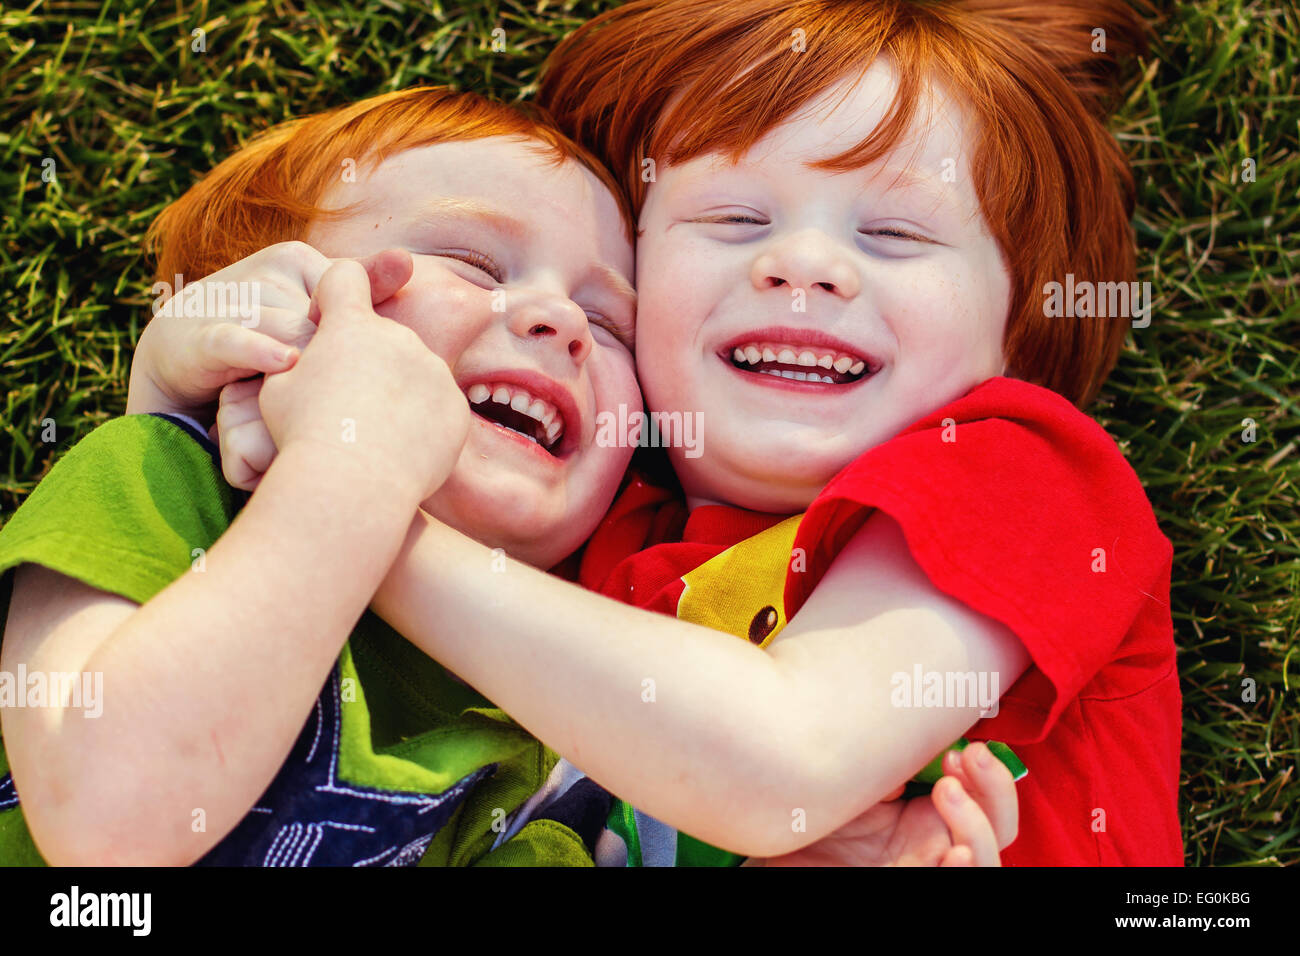 Two happy boys lying on grass laughing Stock Photo